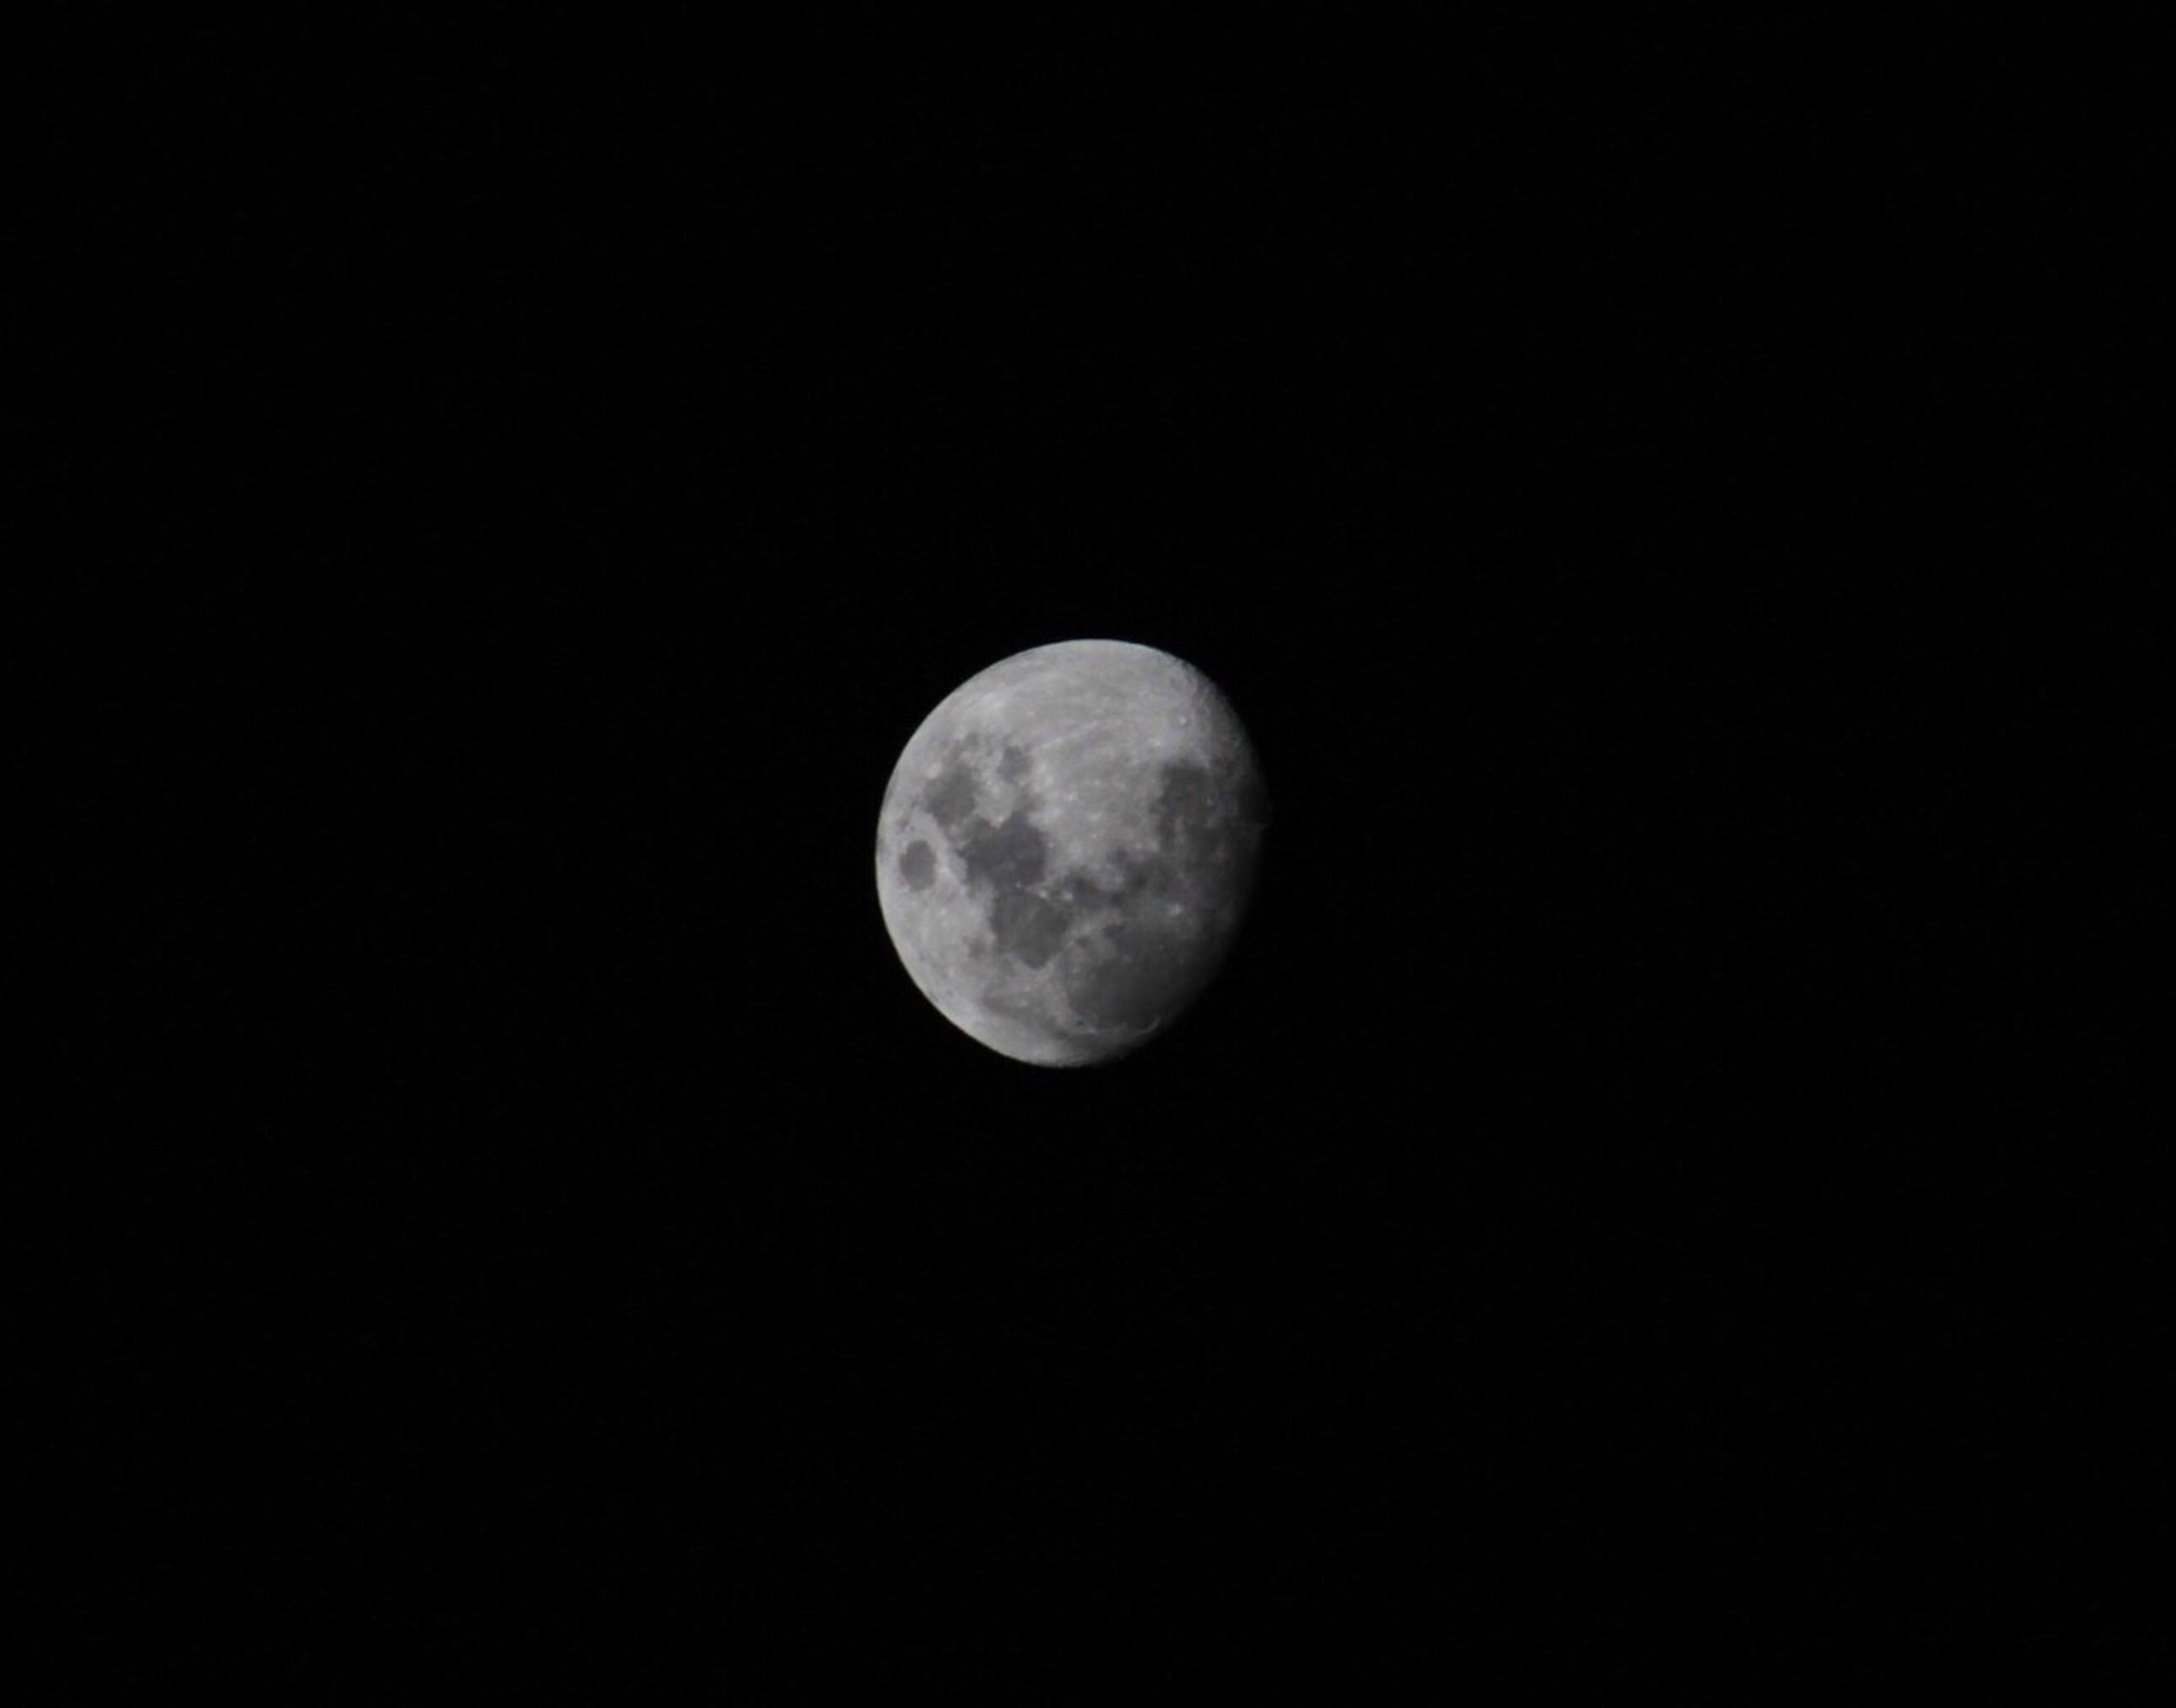 moon, astronomy, full moon, planetary moon, night, moon surface, beauty in nature, tranquil scene, scenics, tranquility, copy space, discovery, circle, low angle view, nature, space exploration, sphere, sky, clear sky, majestic